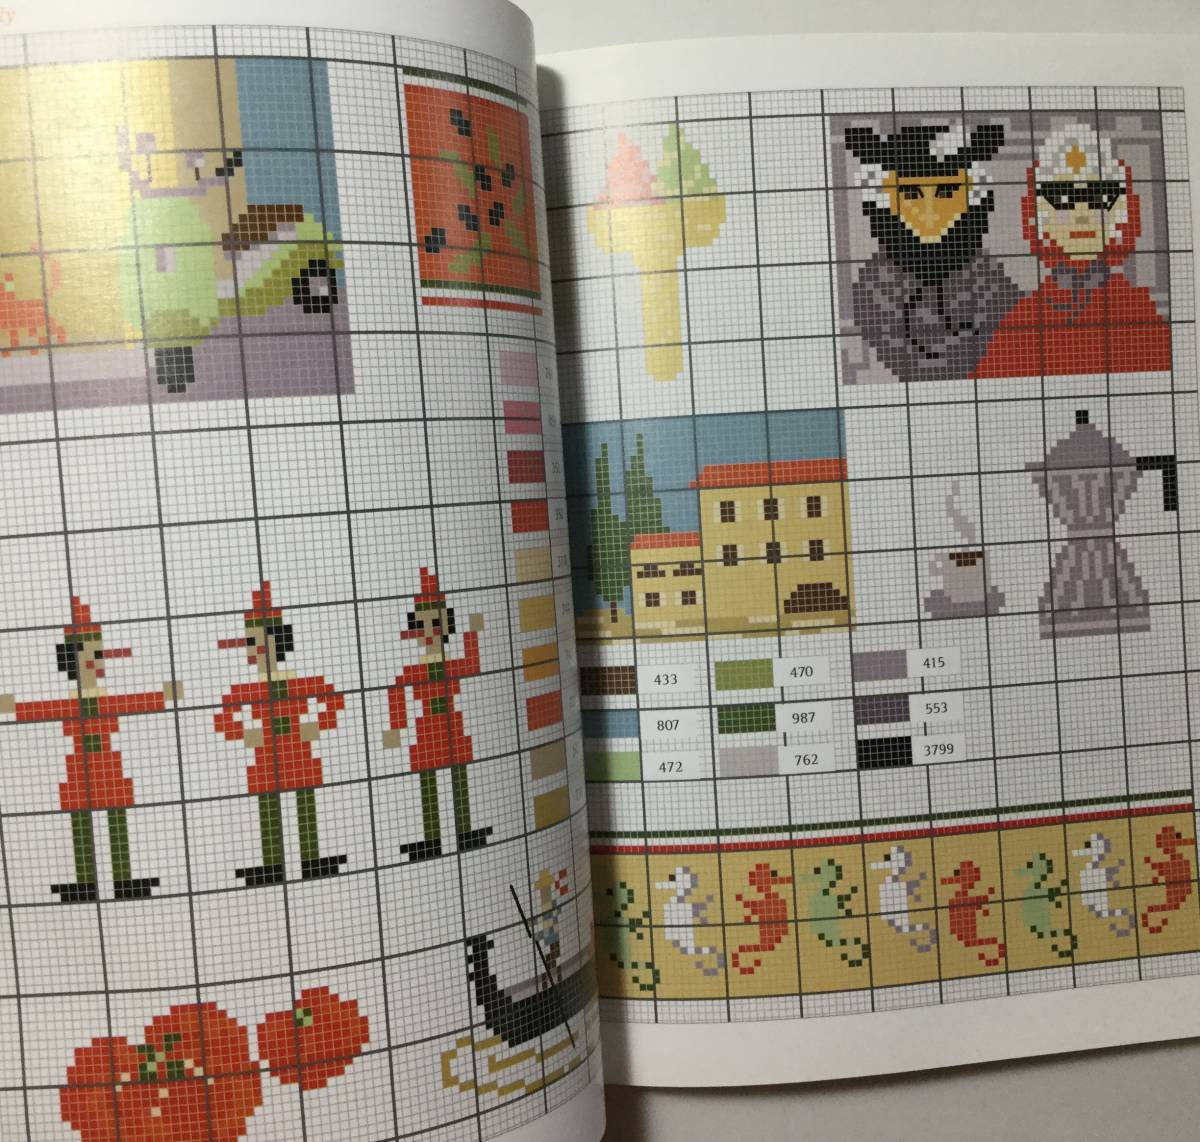 ■ARTBOOK_OUTLET■ 1-059 ★ 手芸本 新品 フランス 刺繍 クロスステッチ CROSS STITCH 図案 SPECIAL EDITION AROUND THE WORLD 希少本_画像8